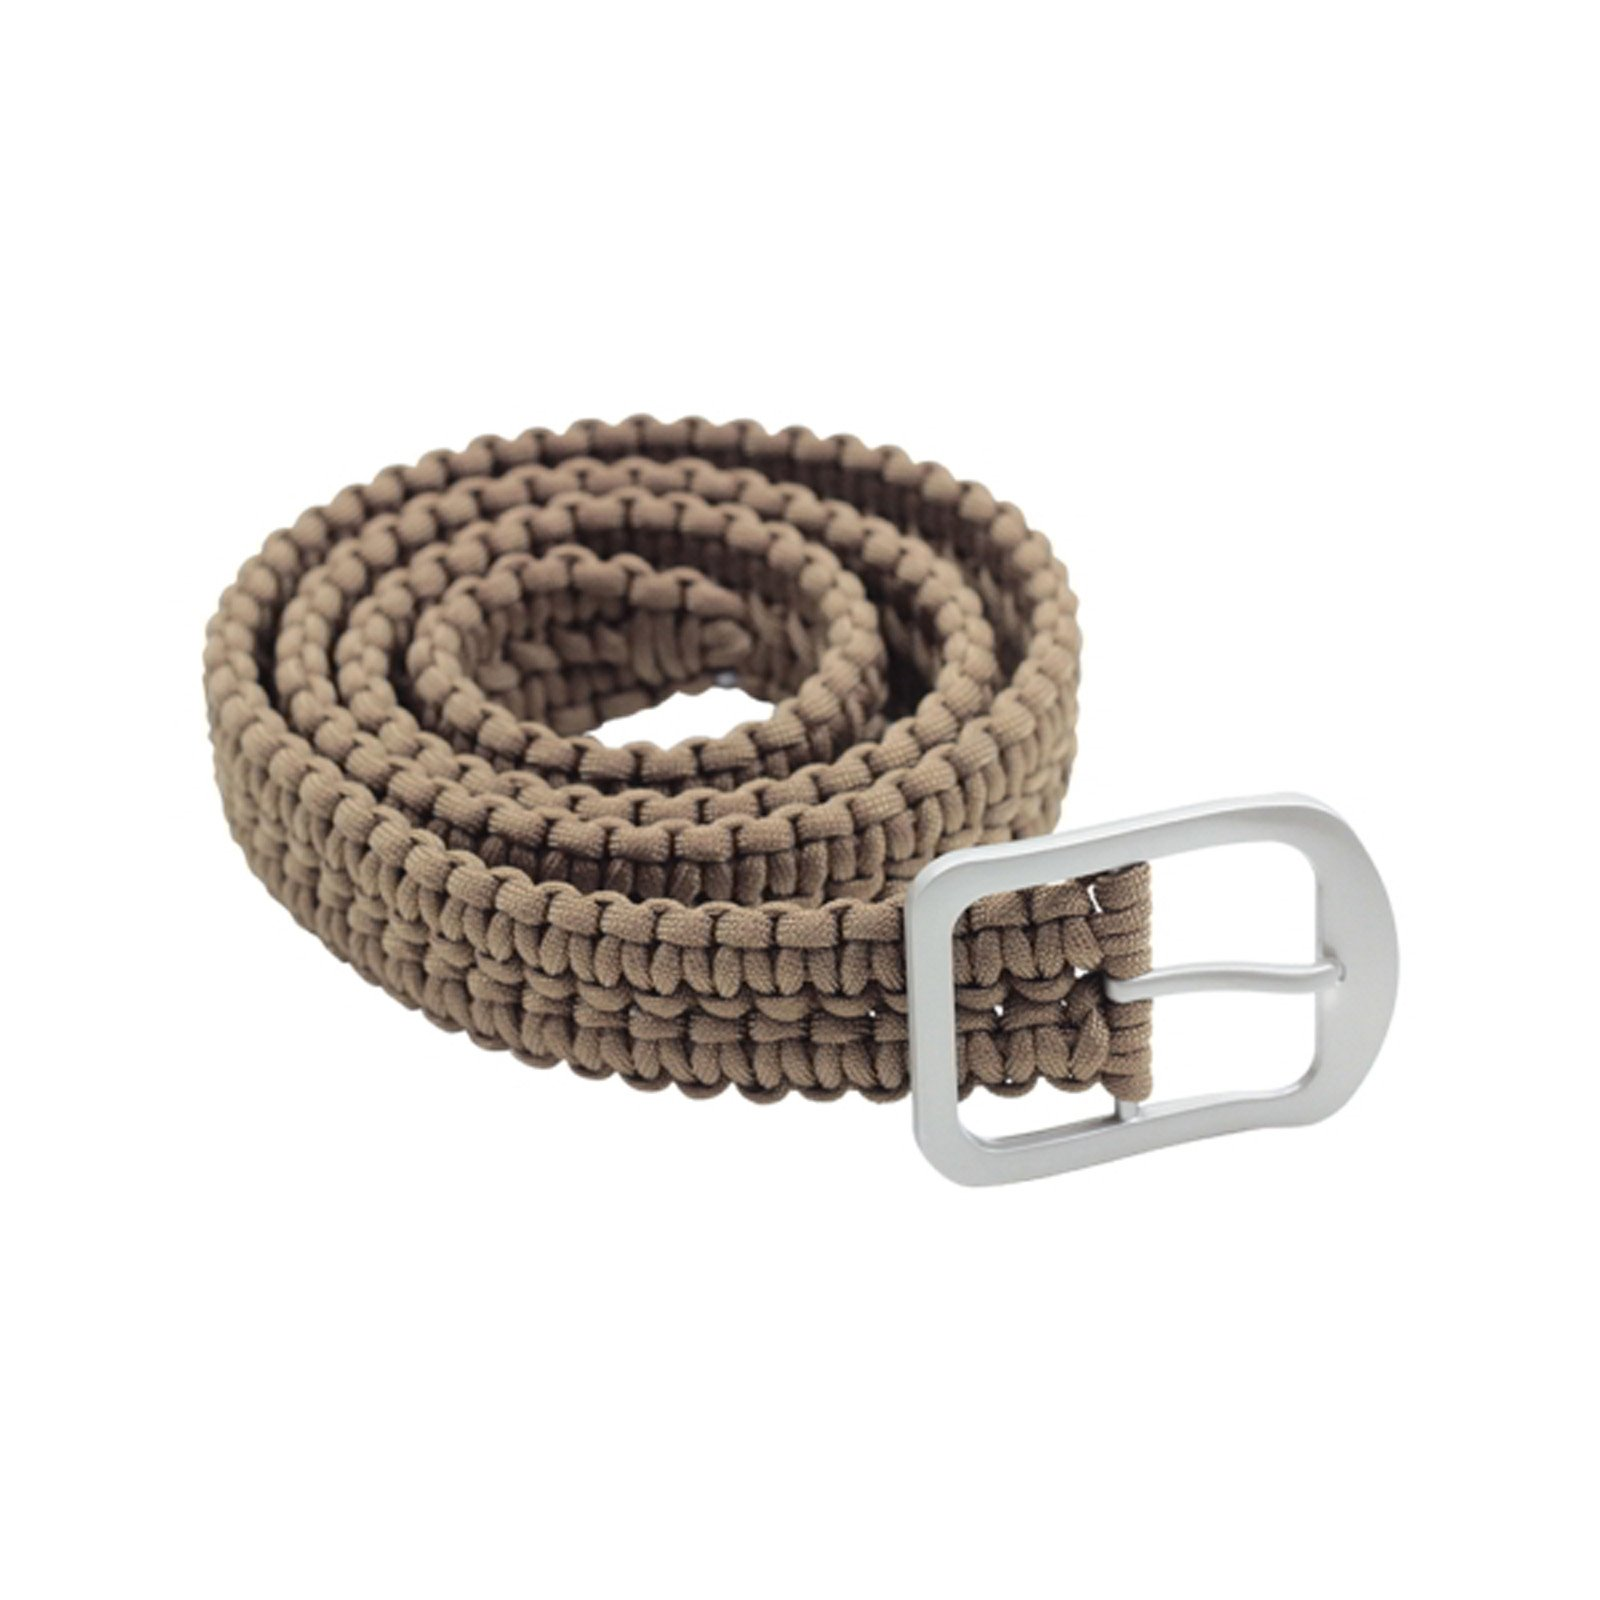 52 Inch ASR Outdoor Milspec 550 Paracord Tan Belt Stainless Steel Buckle